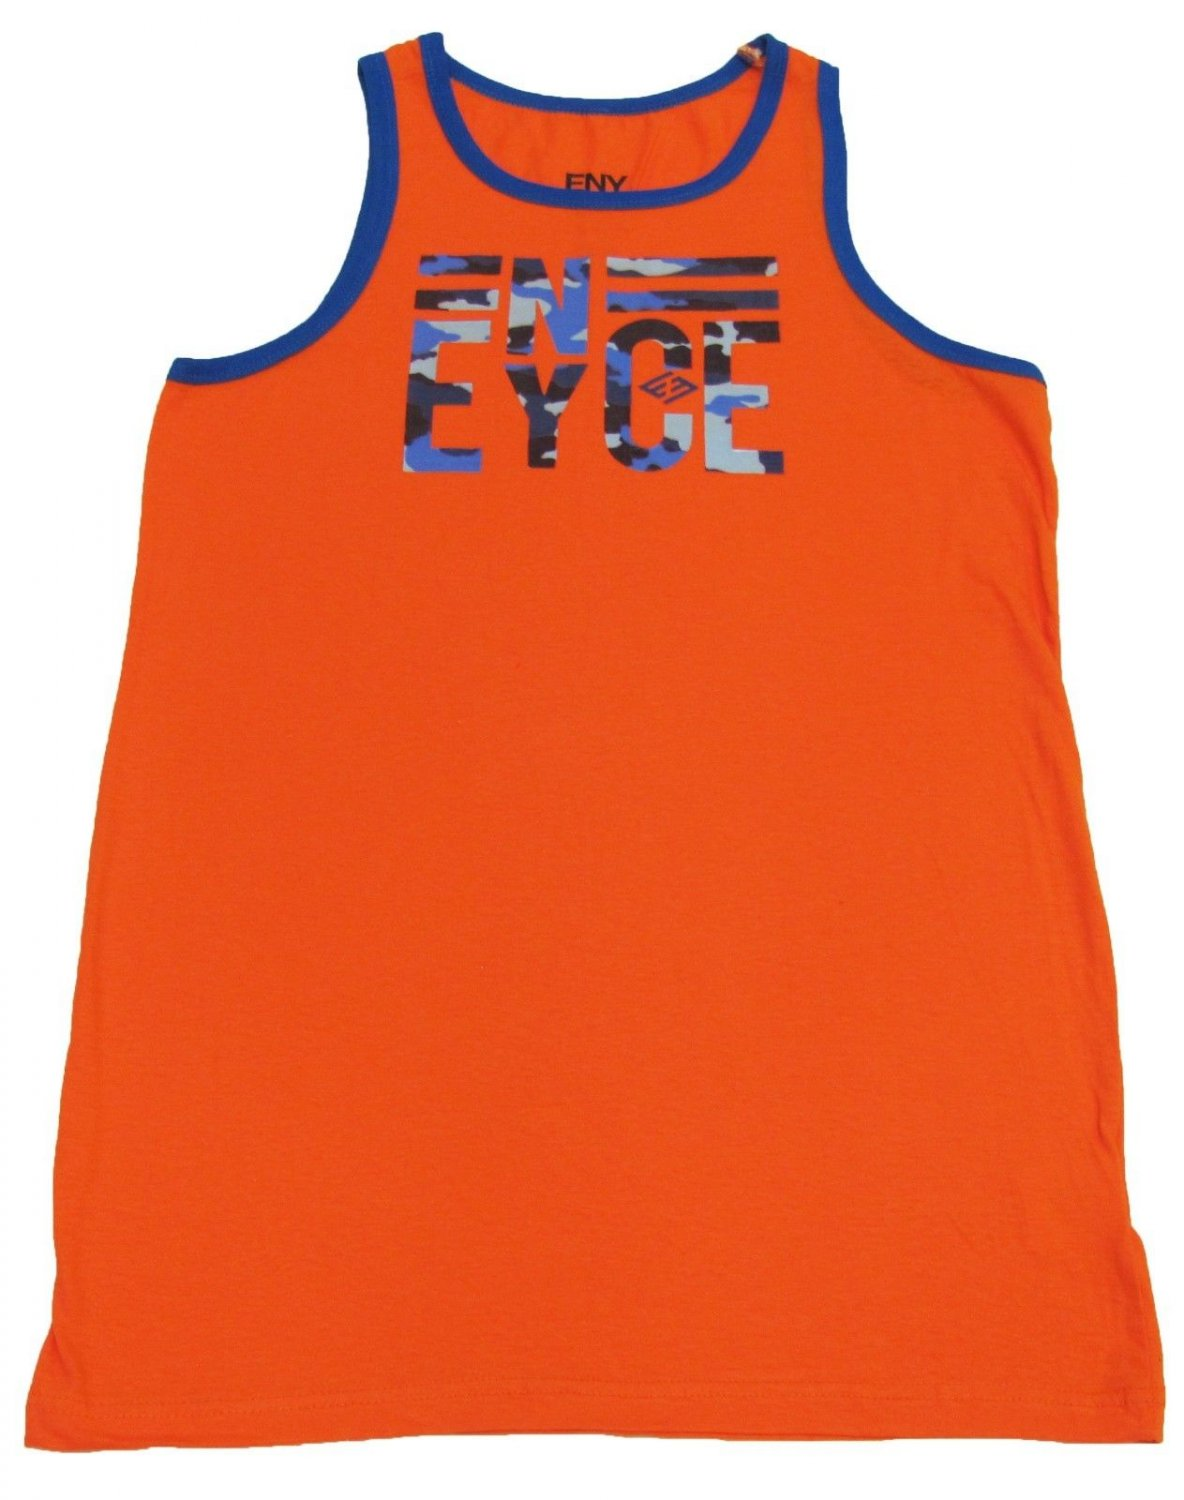 Enyce Boys XL 18-20 Orange Tank Top Shirt with Blue Camo Logo Youth Extra Large